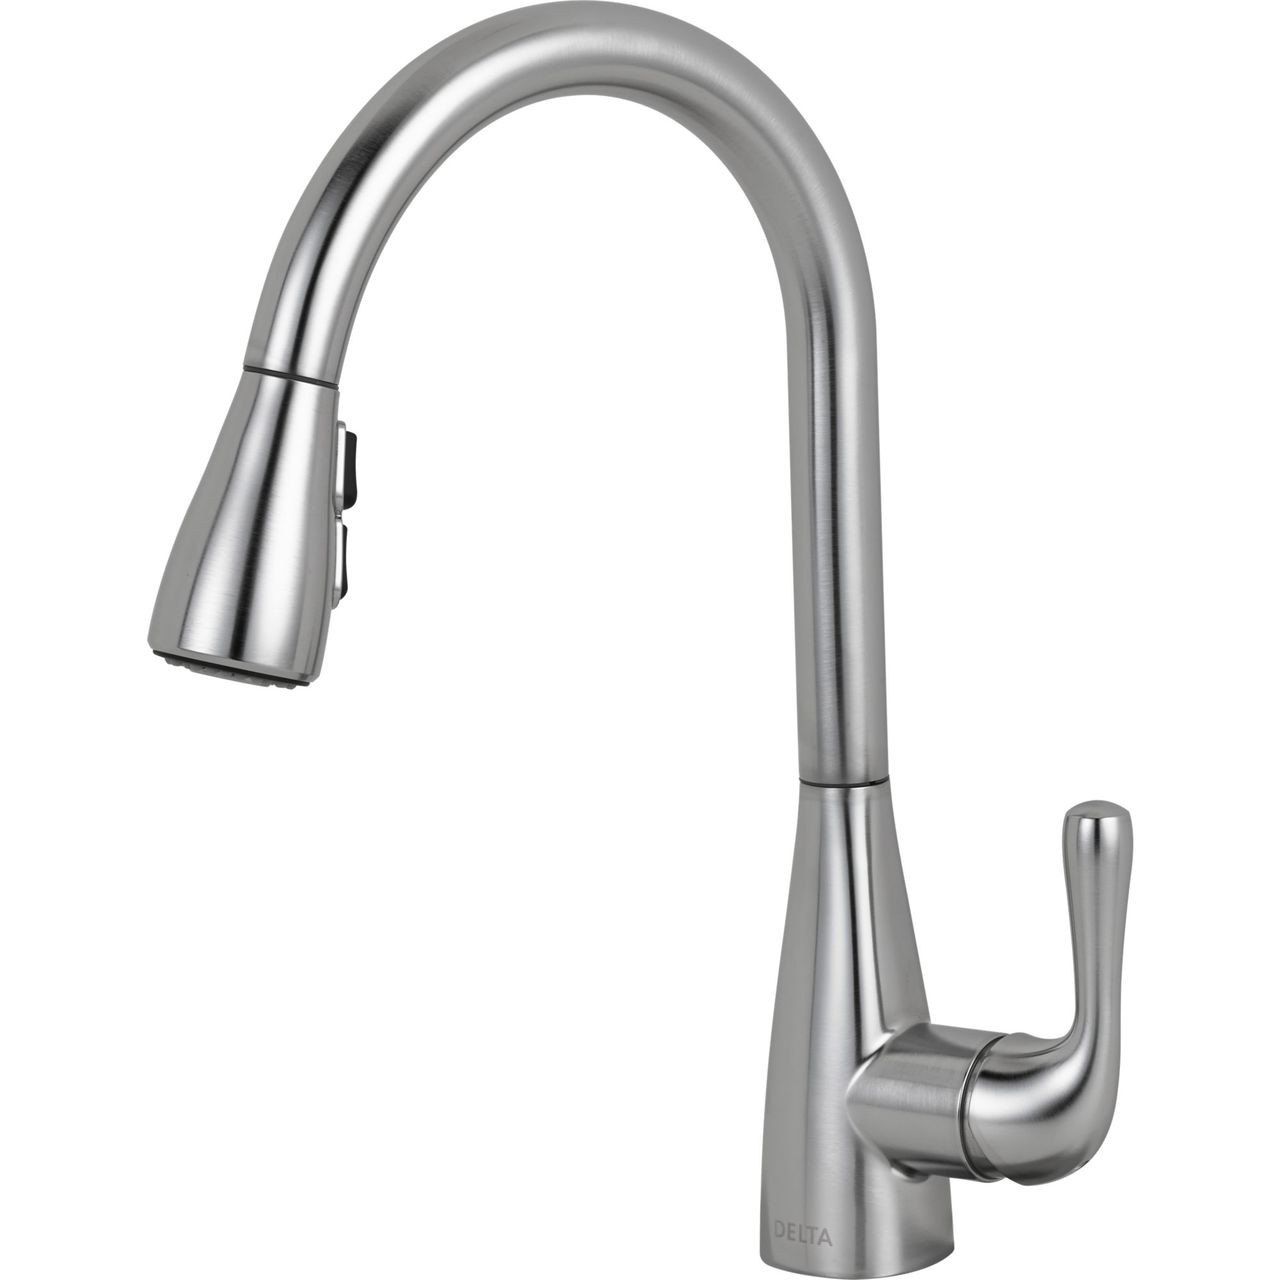 Delta Kitchen Faucets.Delta Marley Single Handle Pull Down Kitchen Faucet That Blue Tub